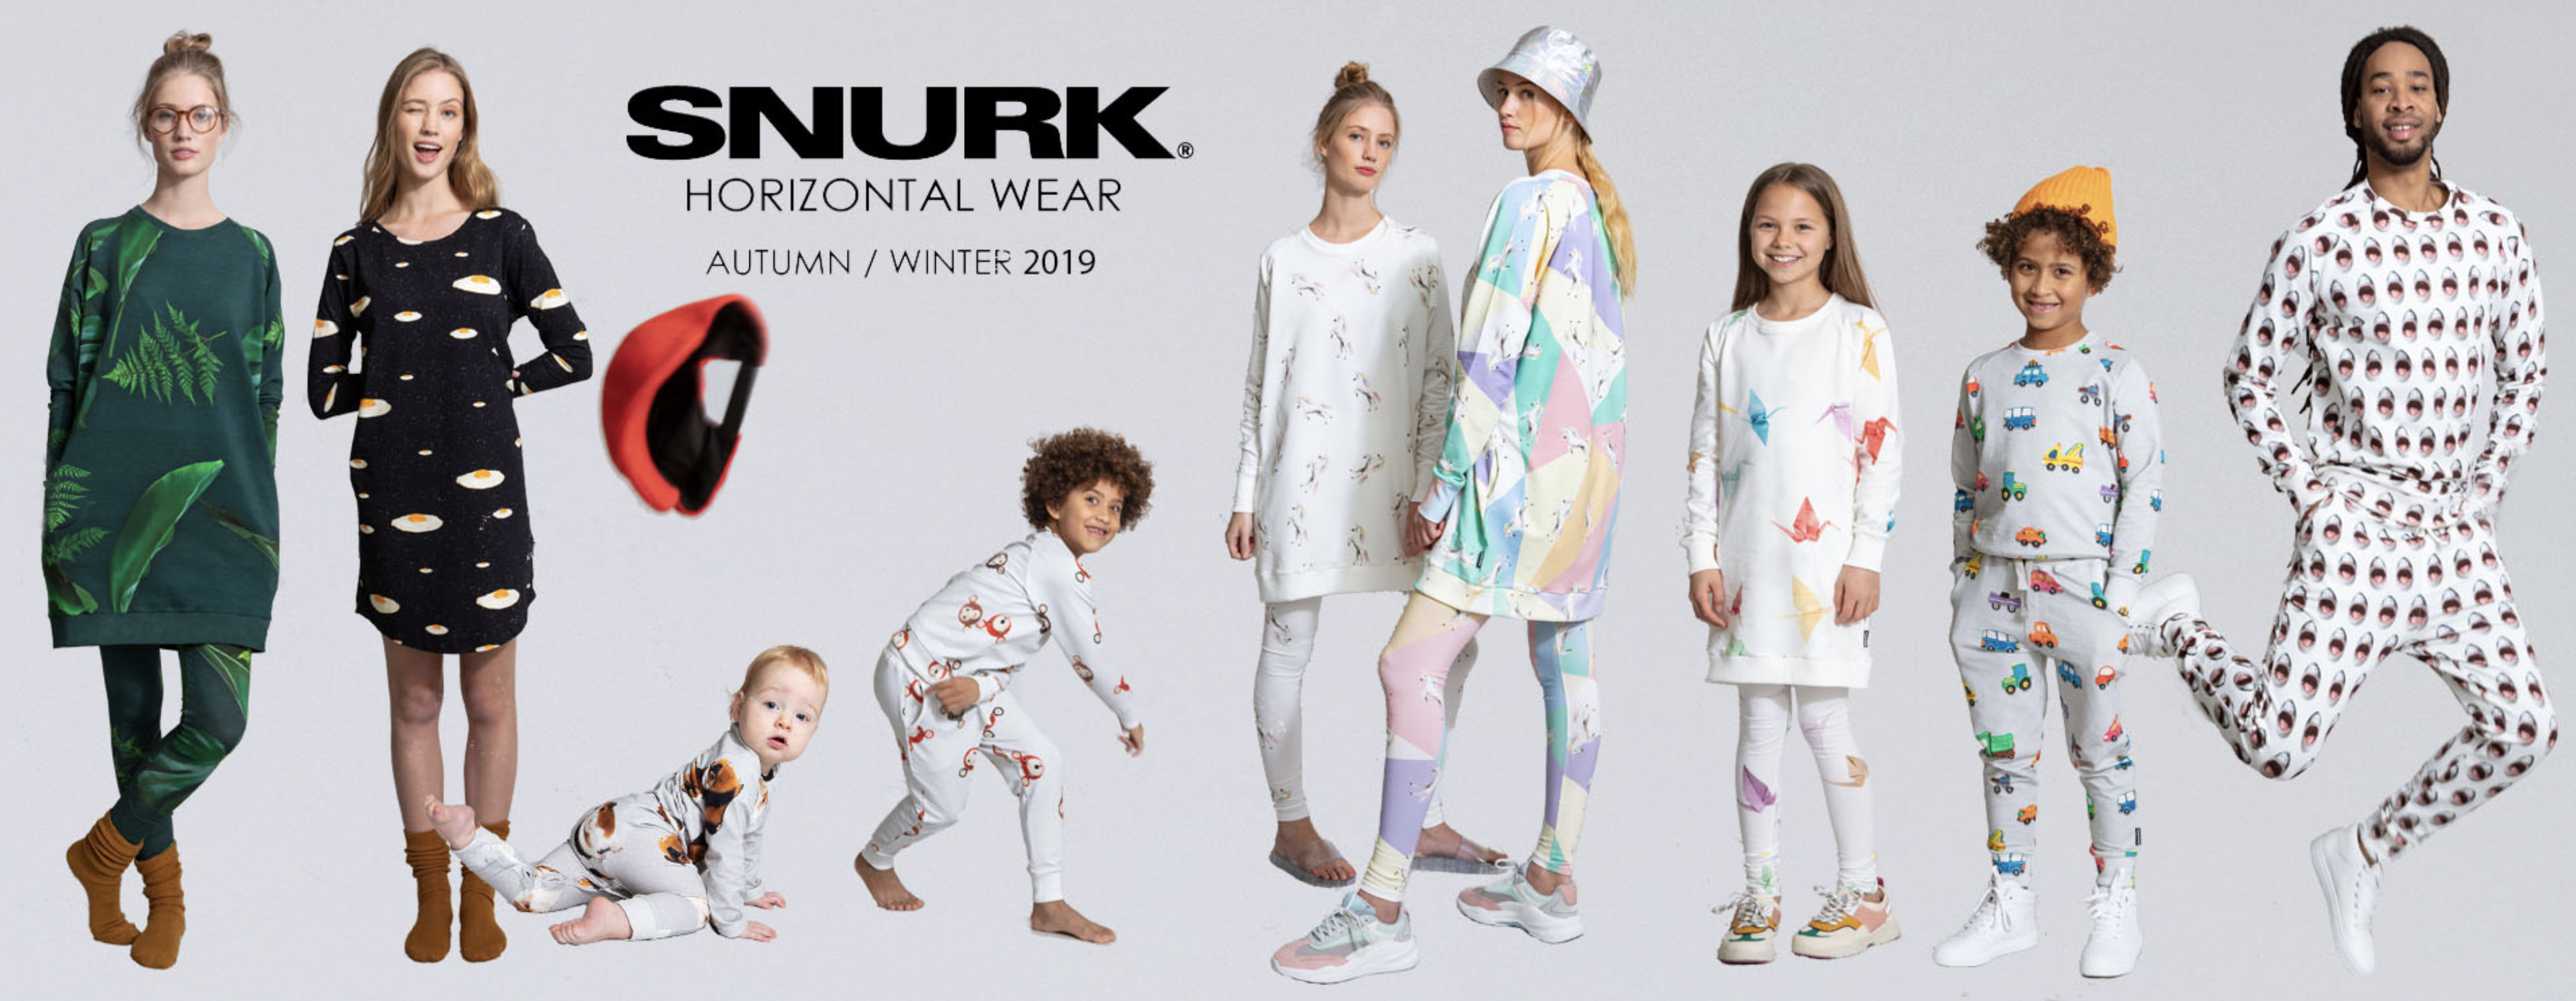 Snurk Homewear Herfst/Winter Collectie 2019